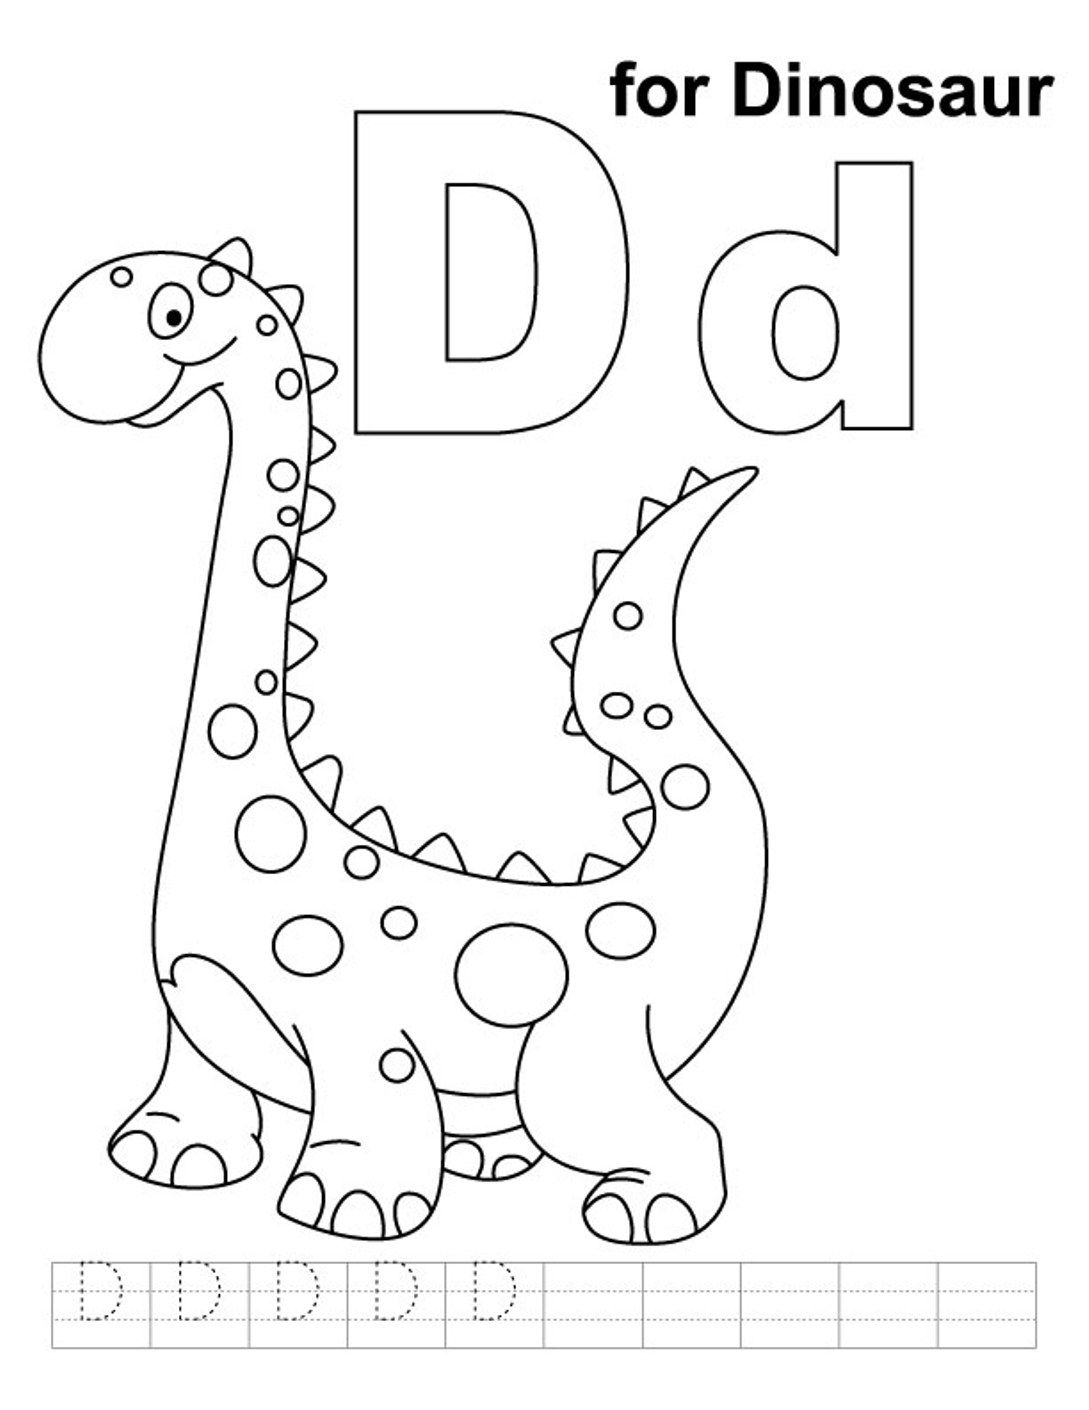 Dinosaur Printable Alphabet Coloring Pages Abc Coloring Pages Alphabet Coloring Pages Abc Coloring